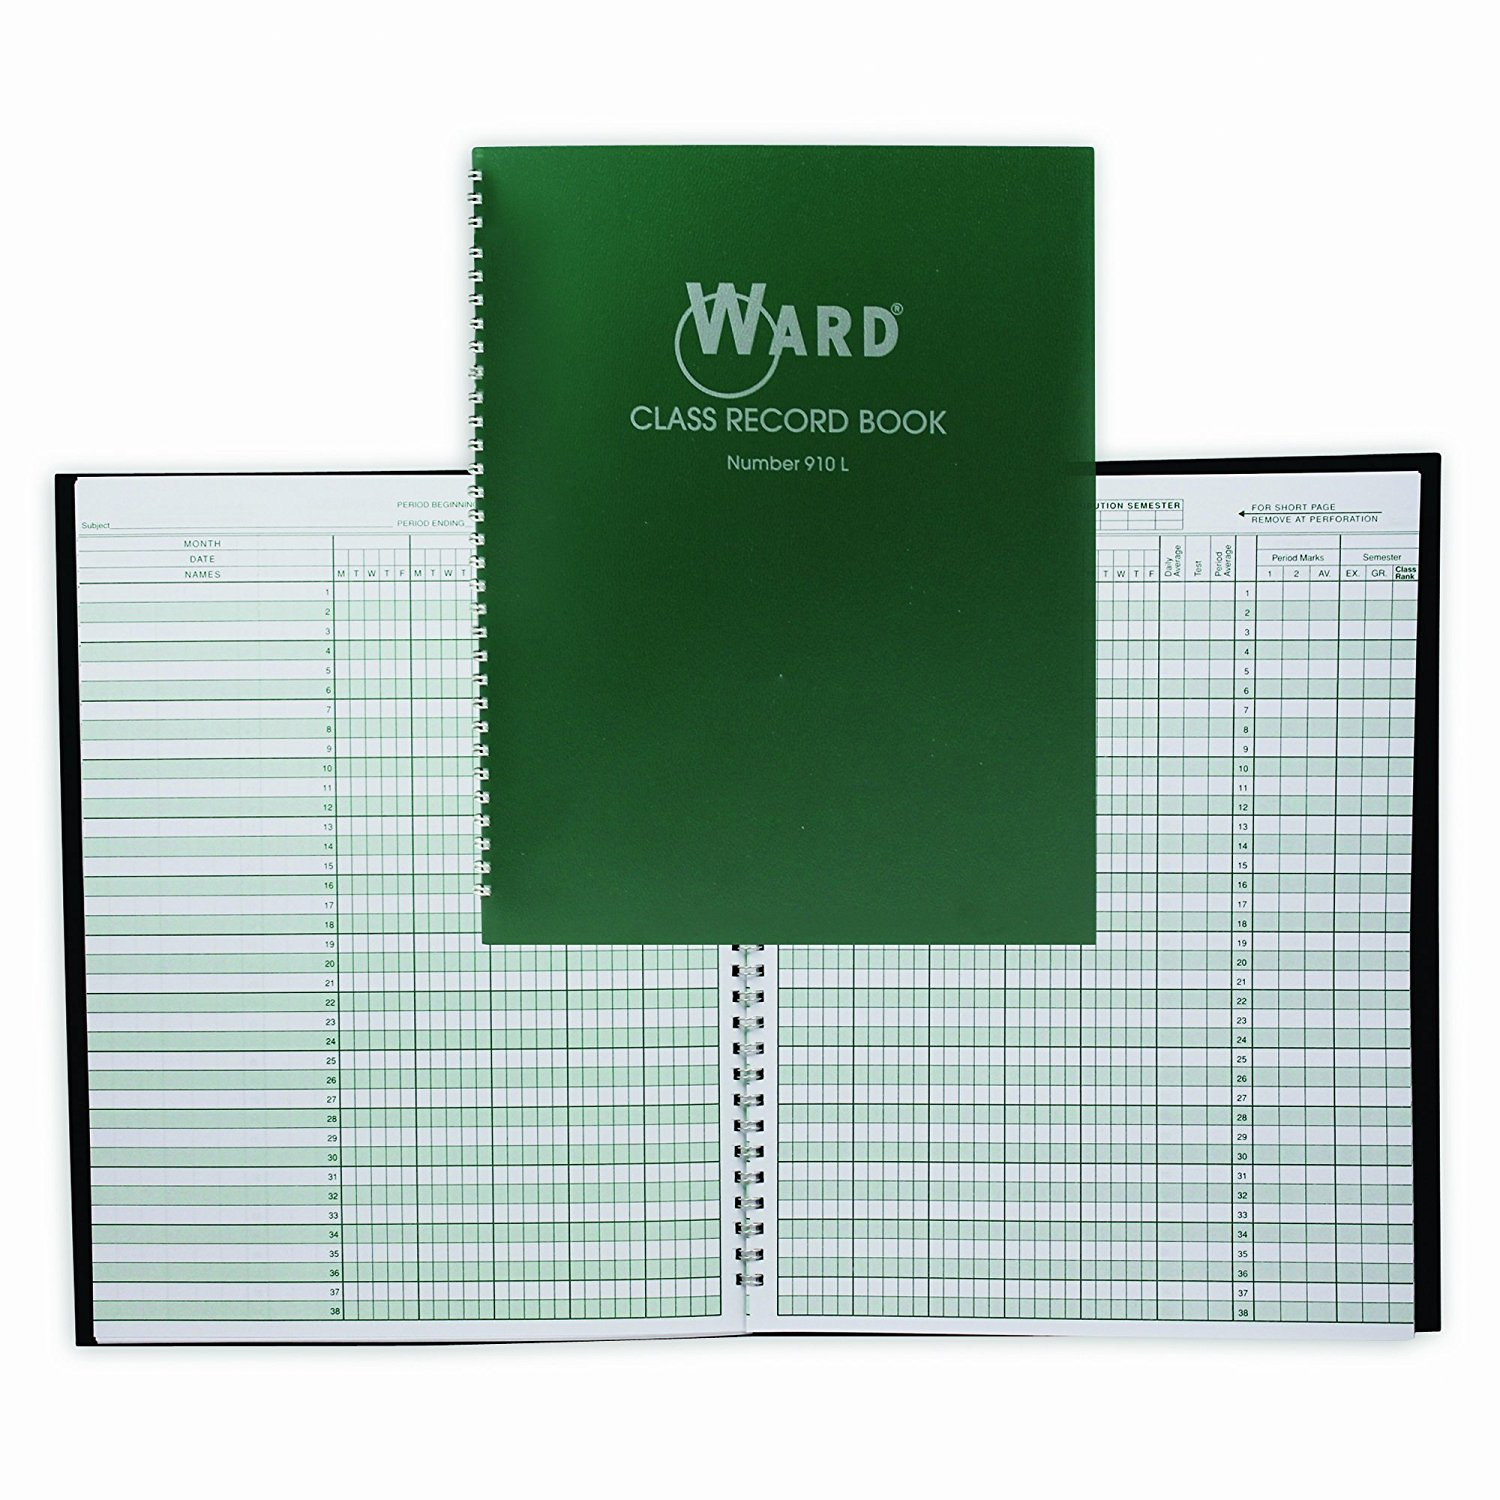 910L Class Record Book, 38 Students, 9-10 Week Grading, 11 x 8-1 2, Green (HUB910L), This book is very durable... by